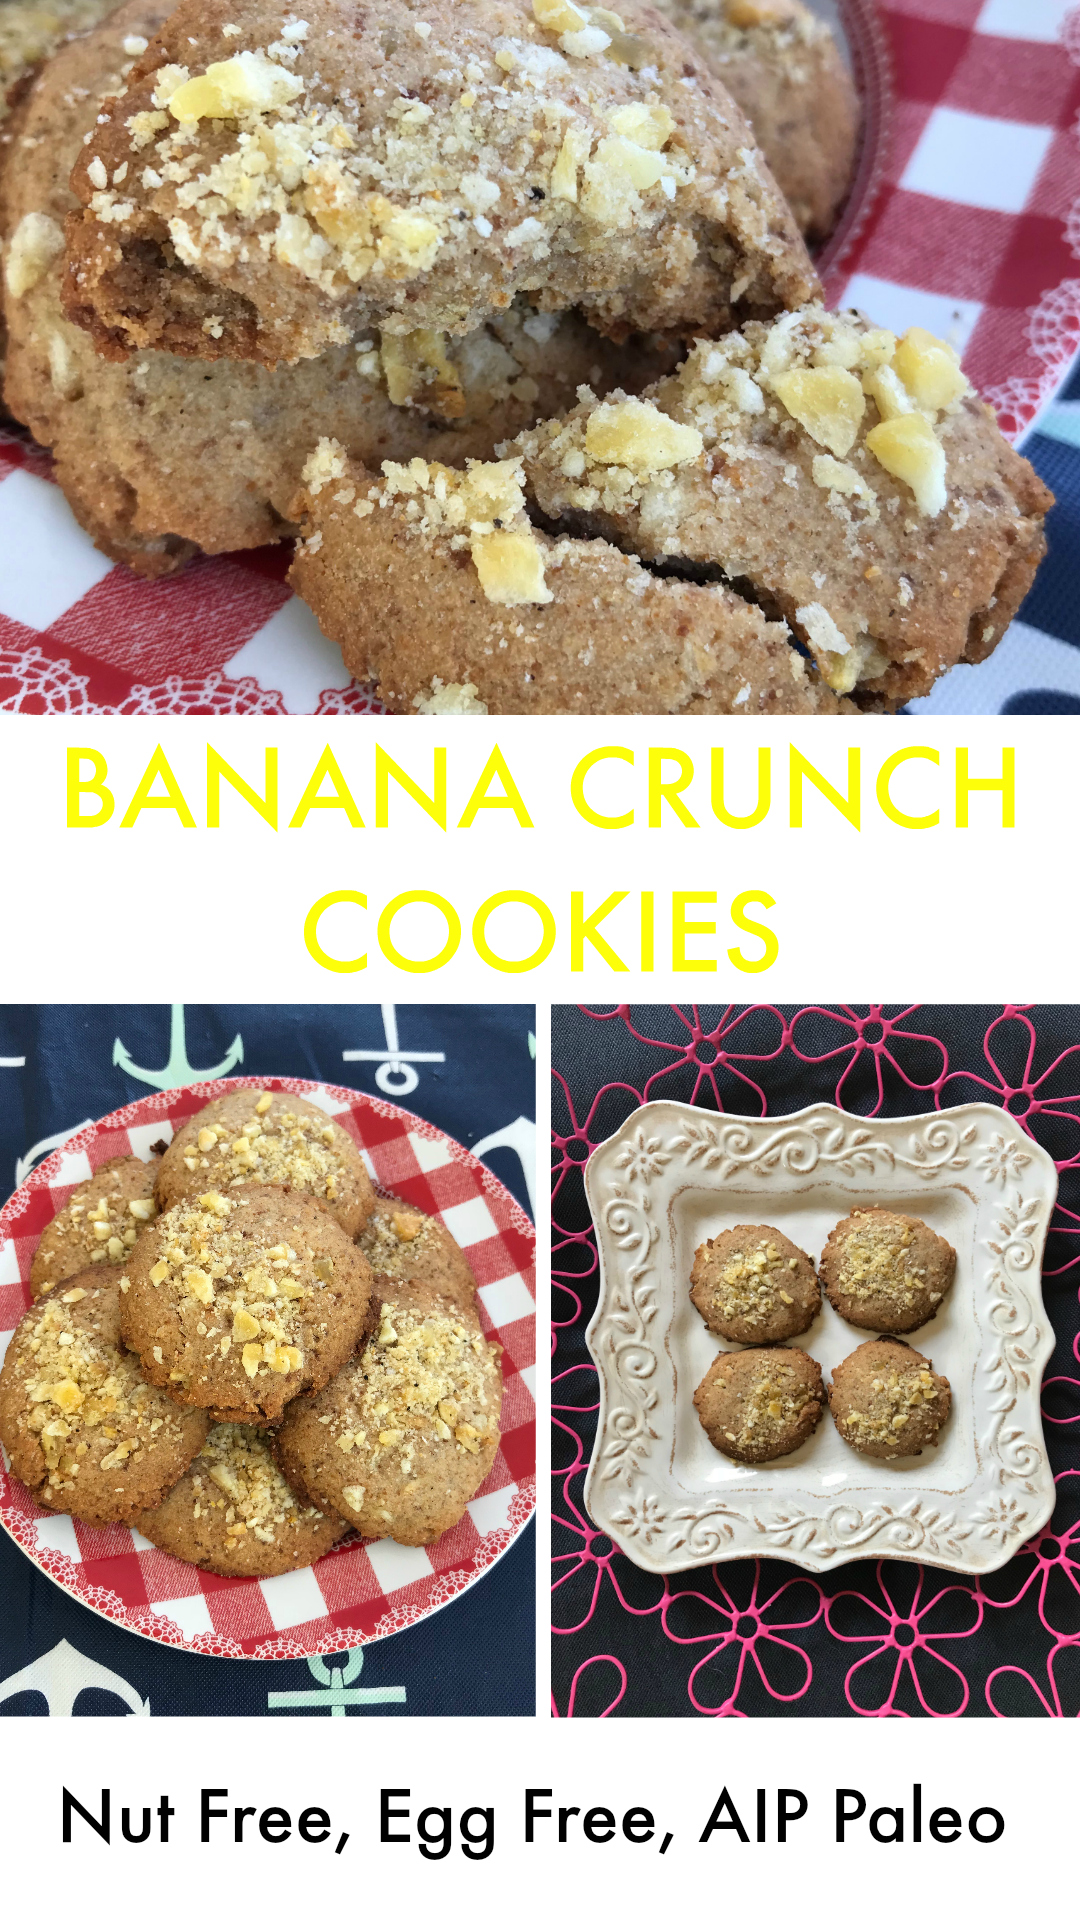 Banana Crunch Cookies - Nut Free, Egg Free, Dairy Free, AIP Paleo